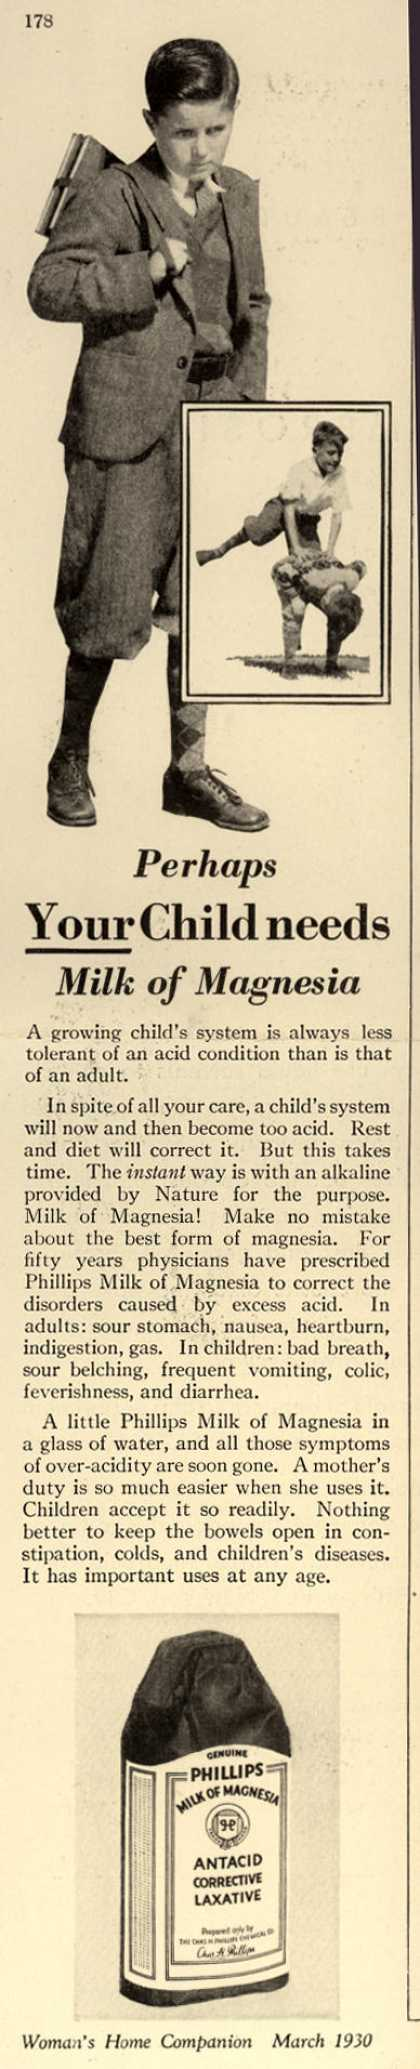 Chas. H. Phillips Chemical Co.'s Milk of Magnesia – Perhaps Your Child needs Milk of Magnesia (1930)